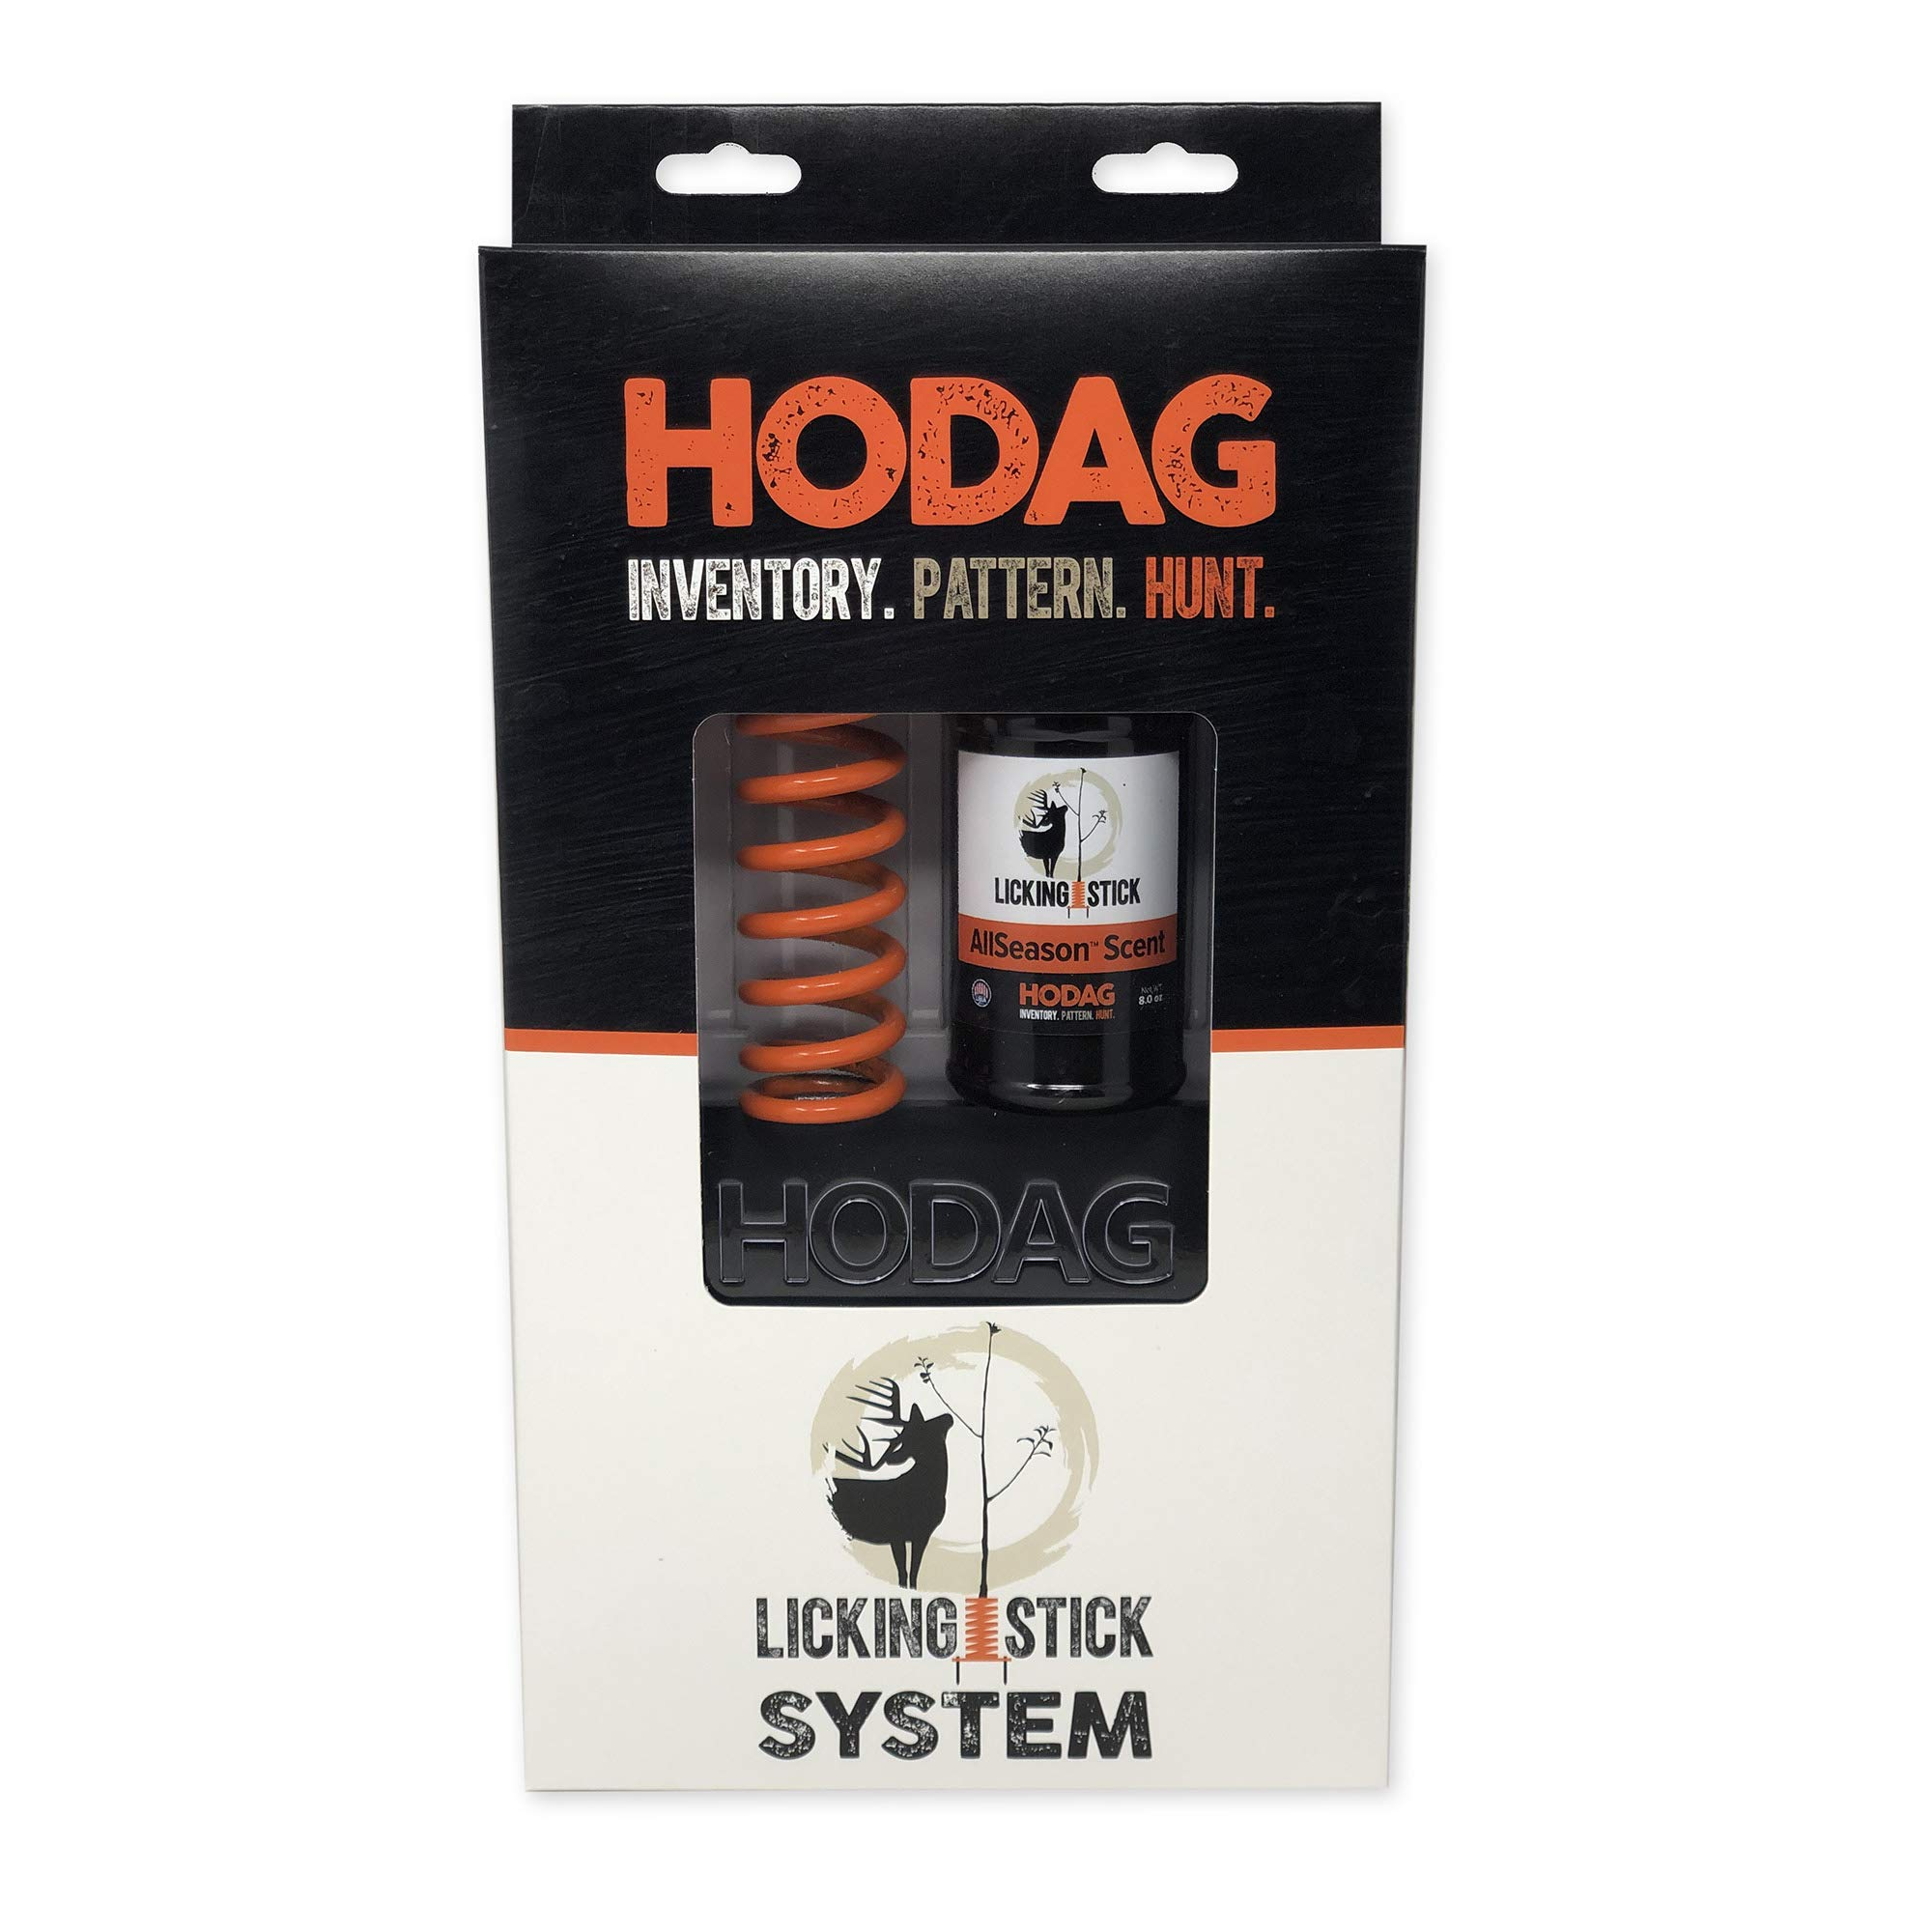 HODAG Licking Stick System - Low Pressure, Natural Way To Inventory and Pattern Deer Year-Round Without Bait Or Minerals (Complete System, Hi-Viz Orange) by HODAG